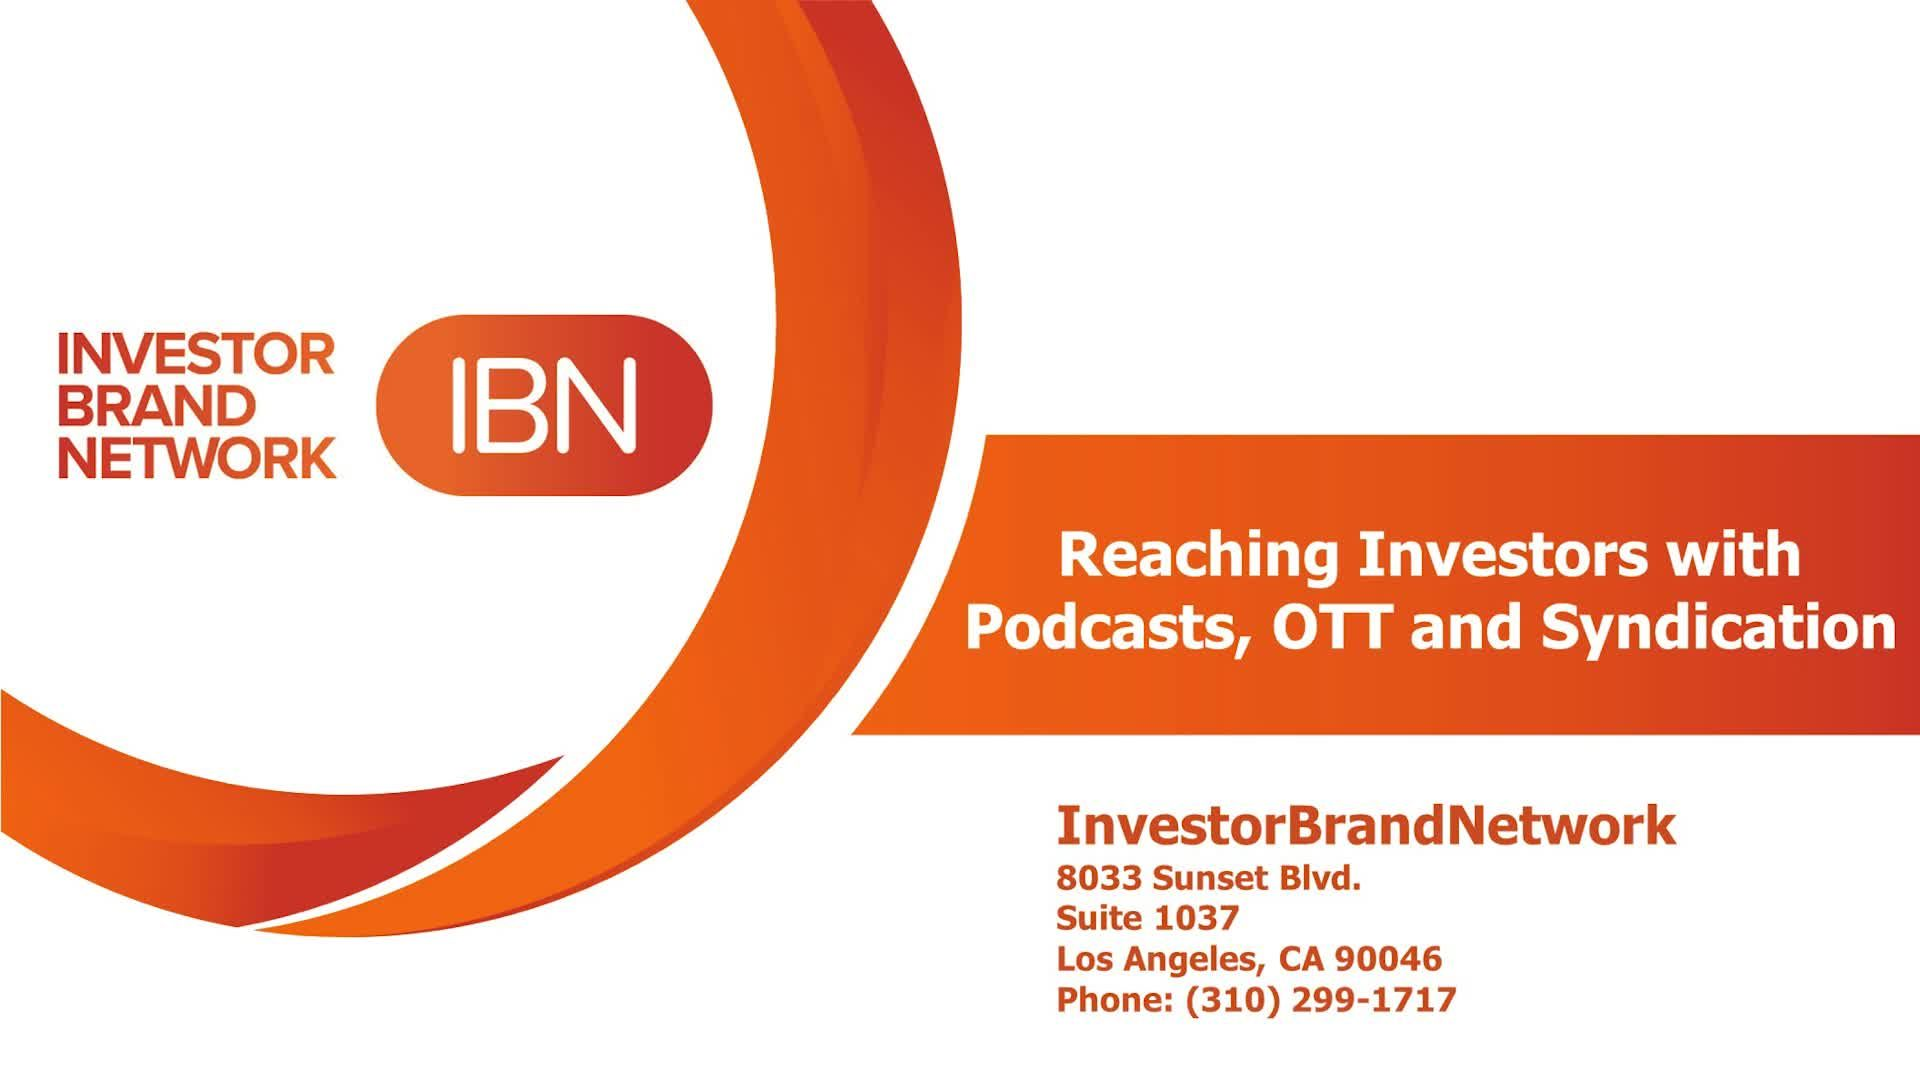 InvestorBrandNetwork - NetworkNewsAudio News   The LD 500 Presentation: Reaching Investors with Podcasts, OTT and Syndication